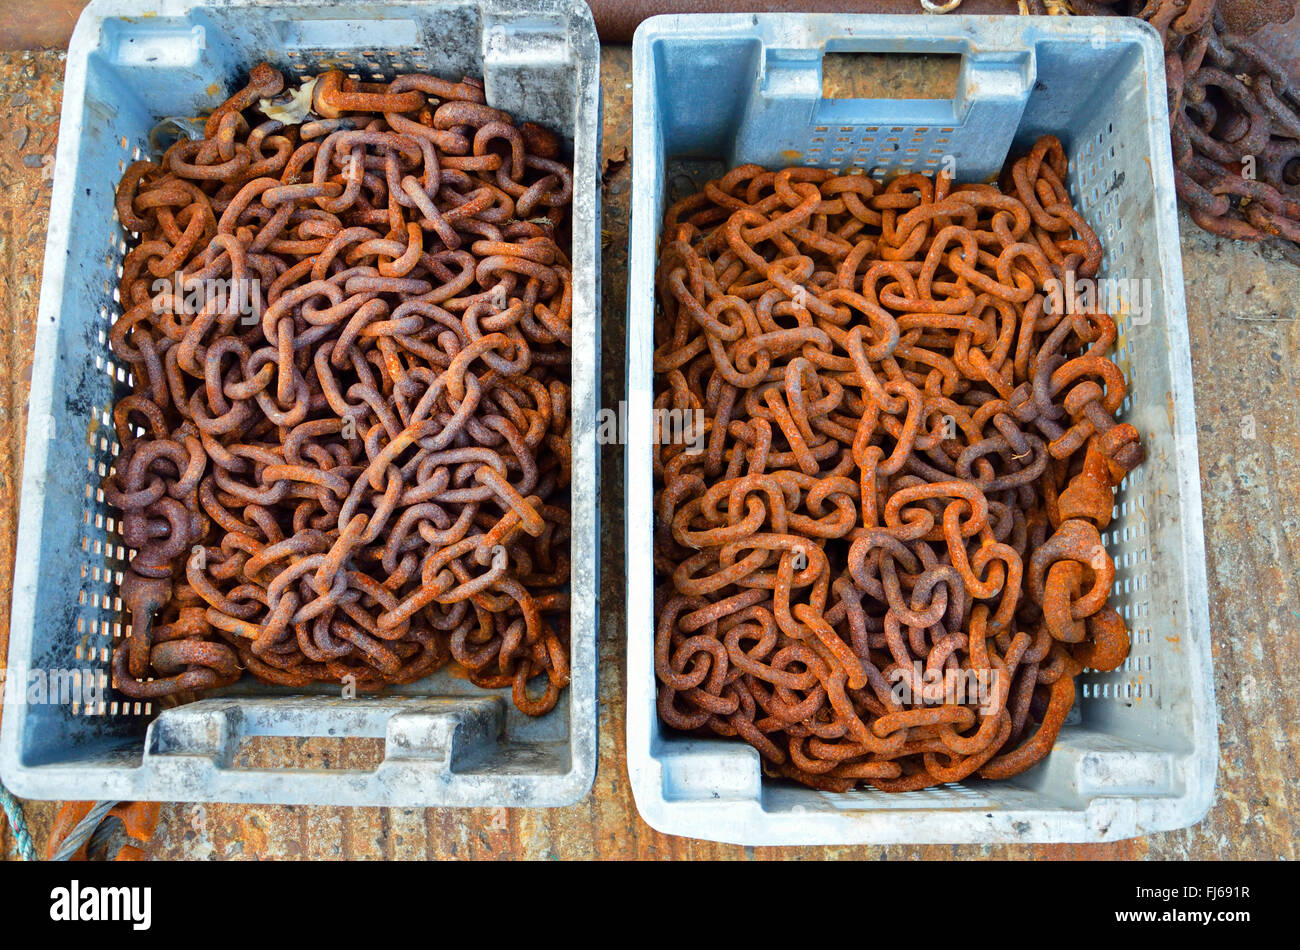 rusty chains in plastic boxes, France, Brittany - Stock Image